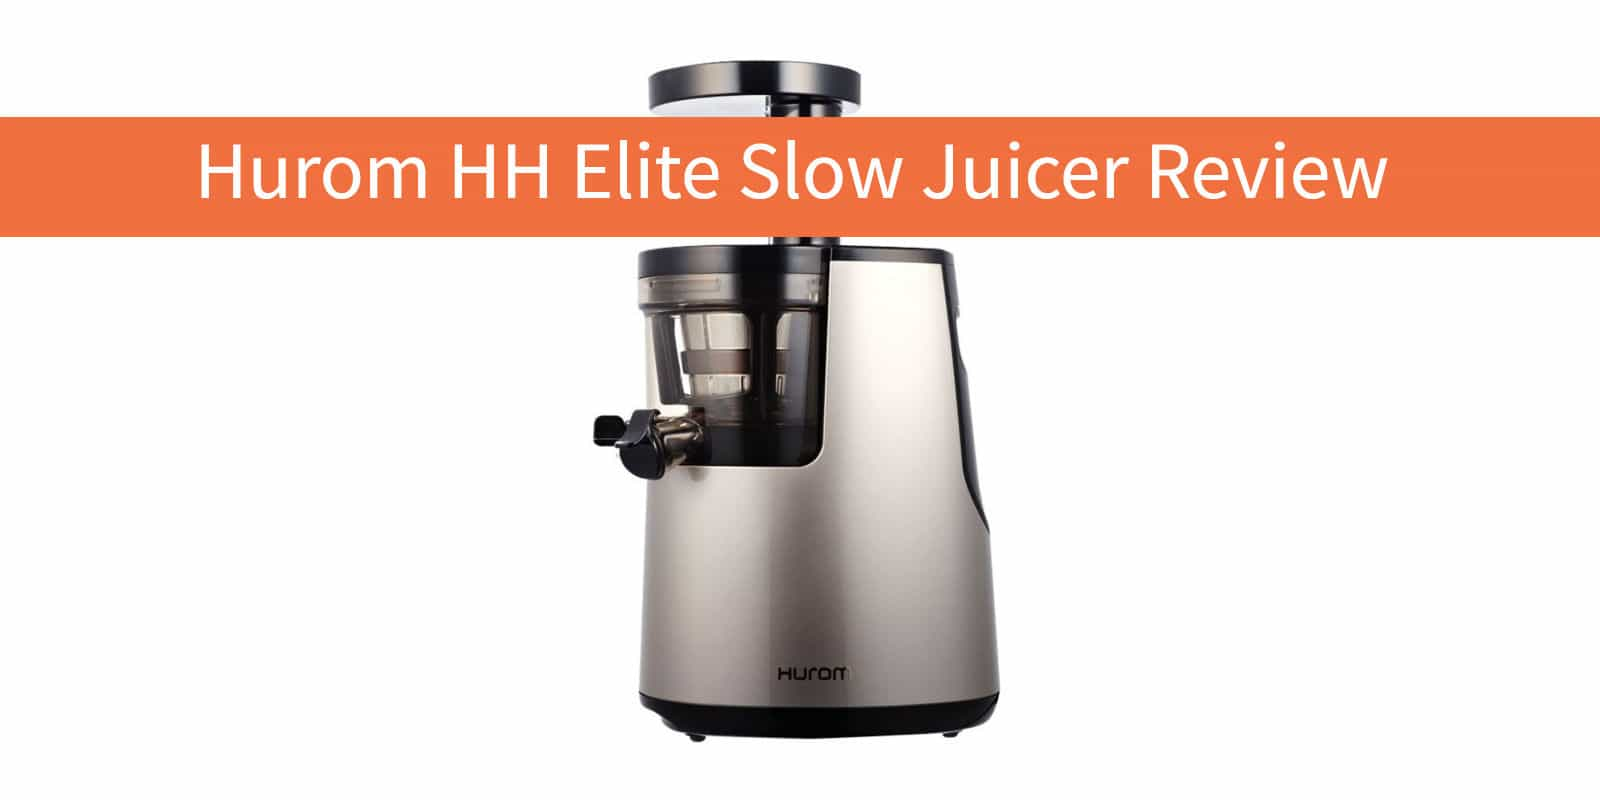 Hurom Hh Elite Slow Juicer : Hurom HH Elite Slow Juicer Review (2018) vegByte